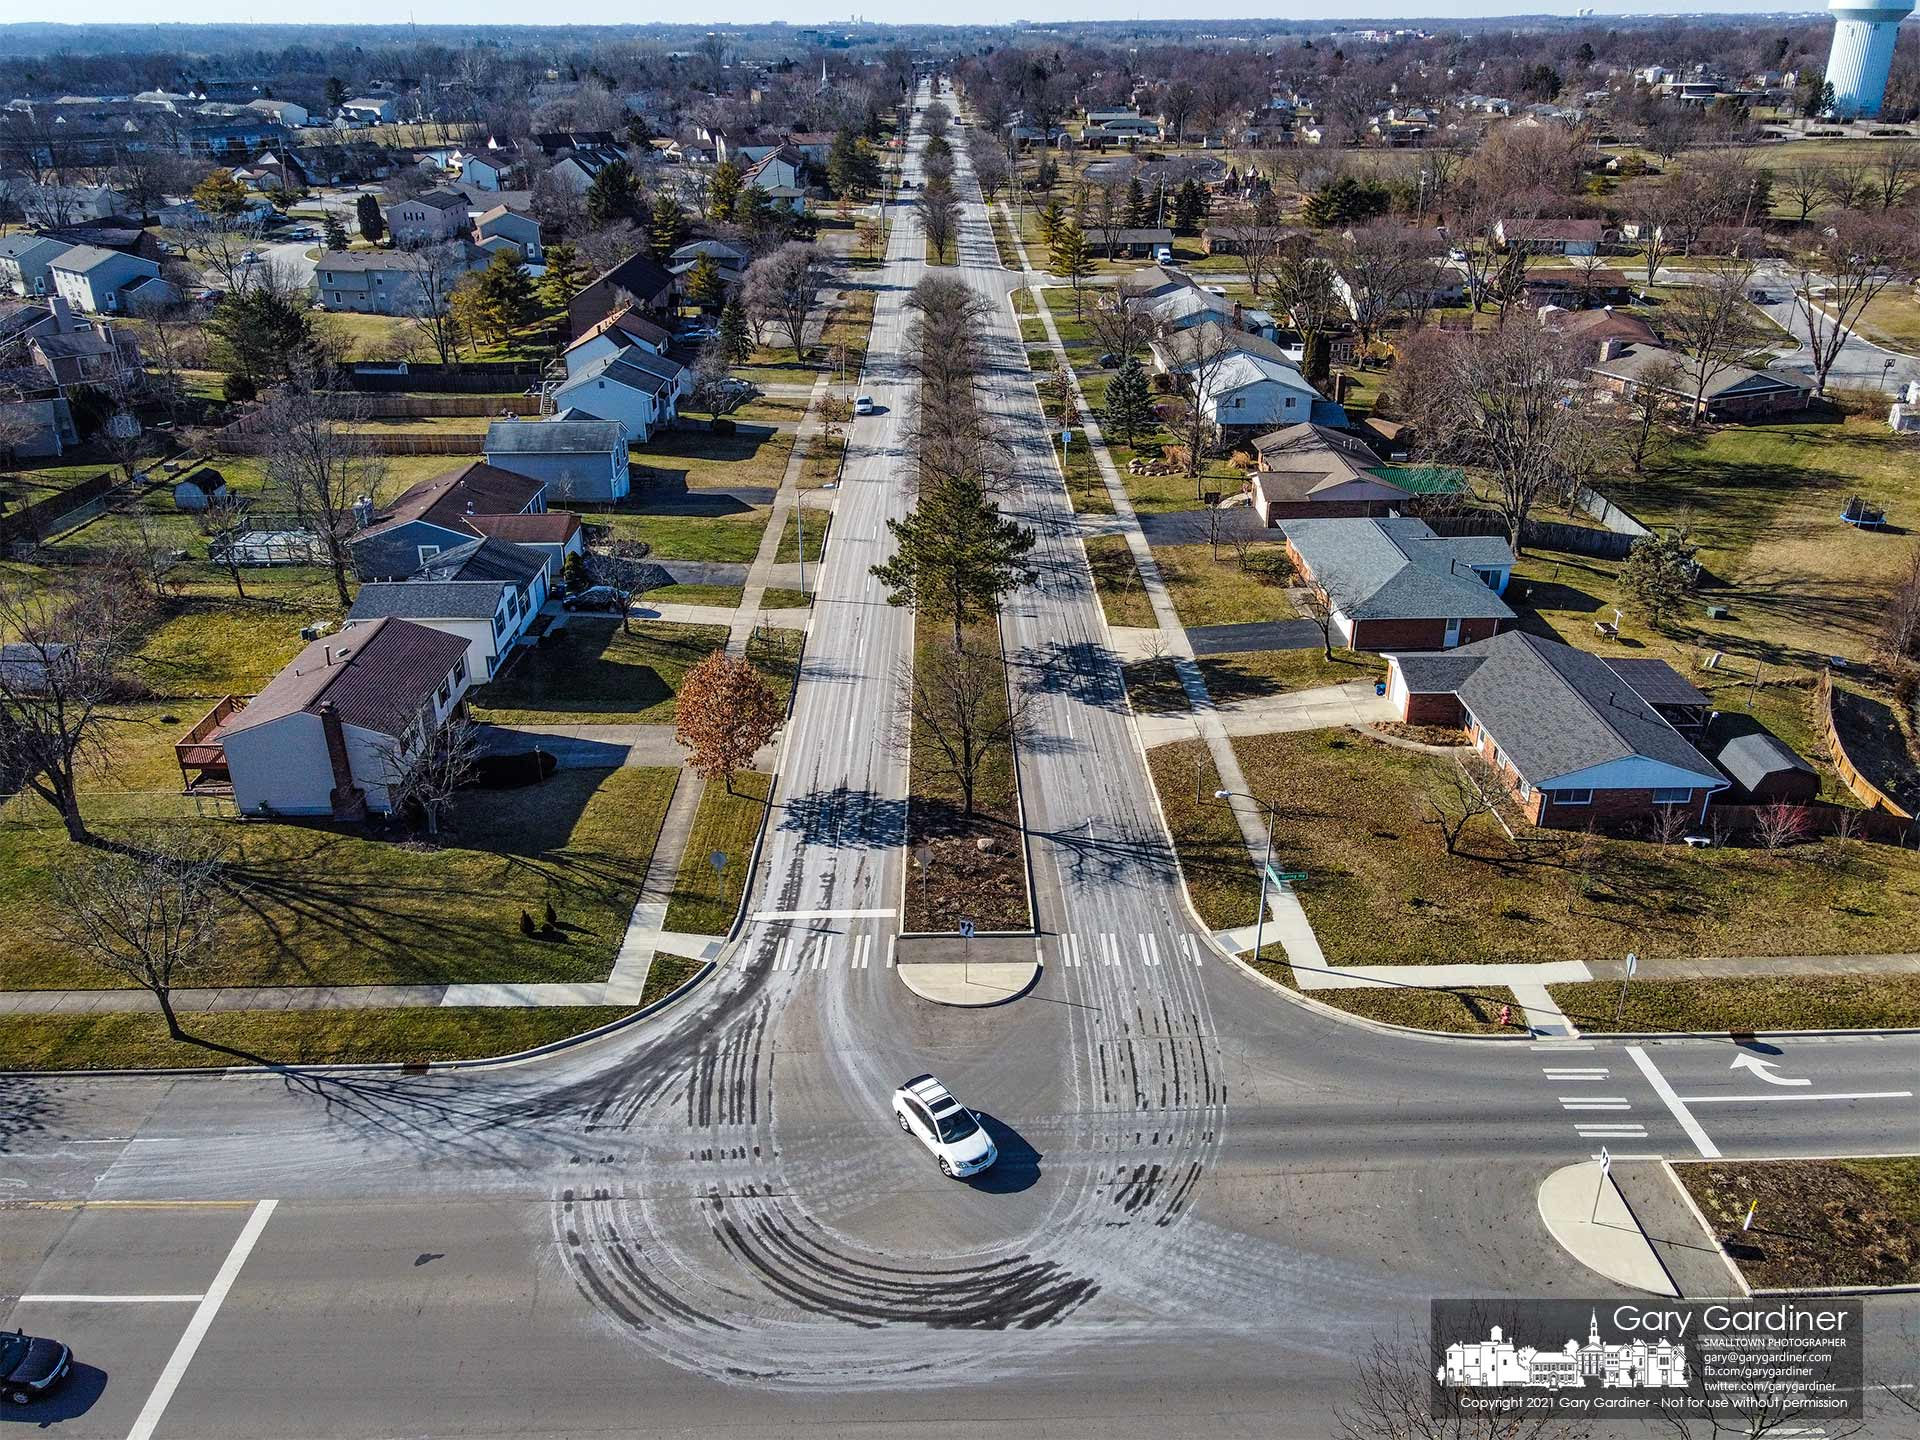 Cars travel through the intersection of Spring Rd. and Huber Village Blvd. over the drying spray of snow-melting brine sprayed by the city in anticipation of a weekend snowstorm. My Final Photo for Jan. 29, 2021.